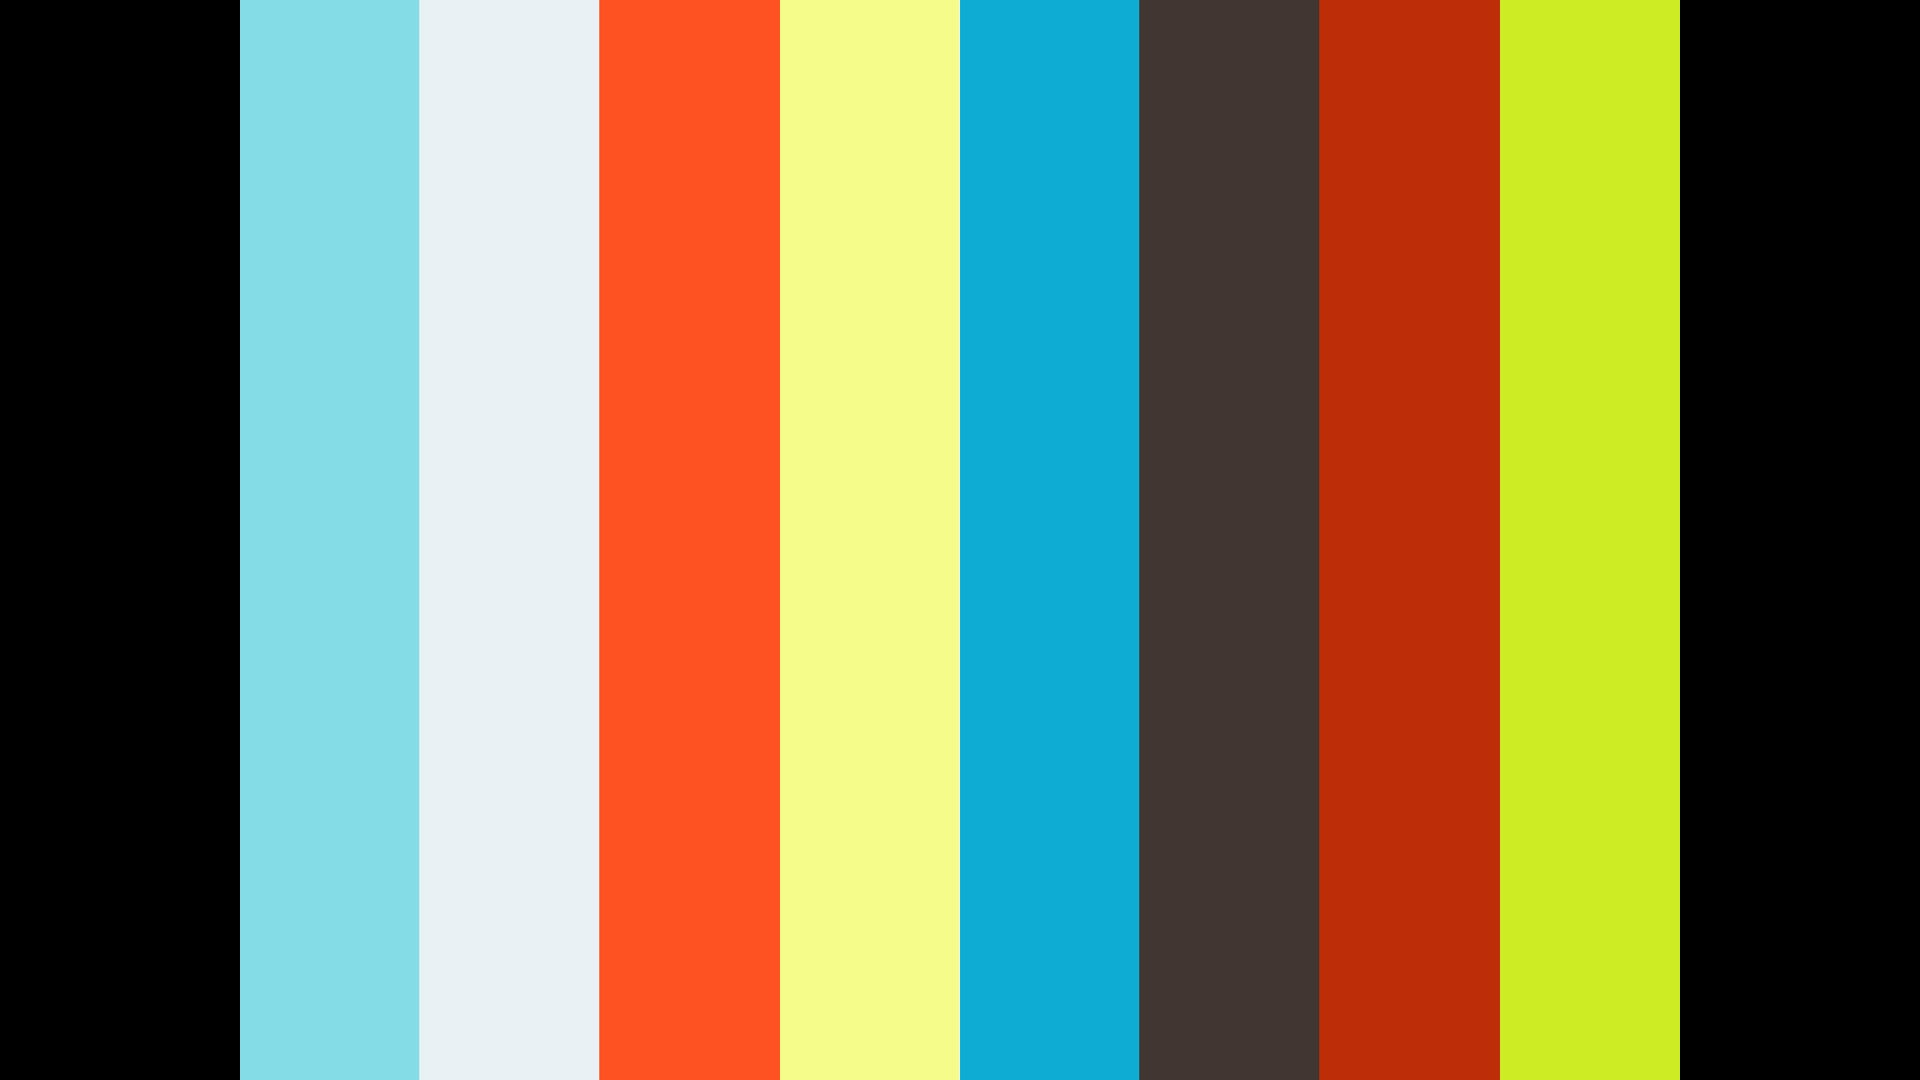 Strengthening Community Through Your Sunday School Class